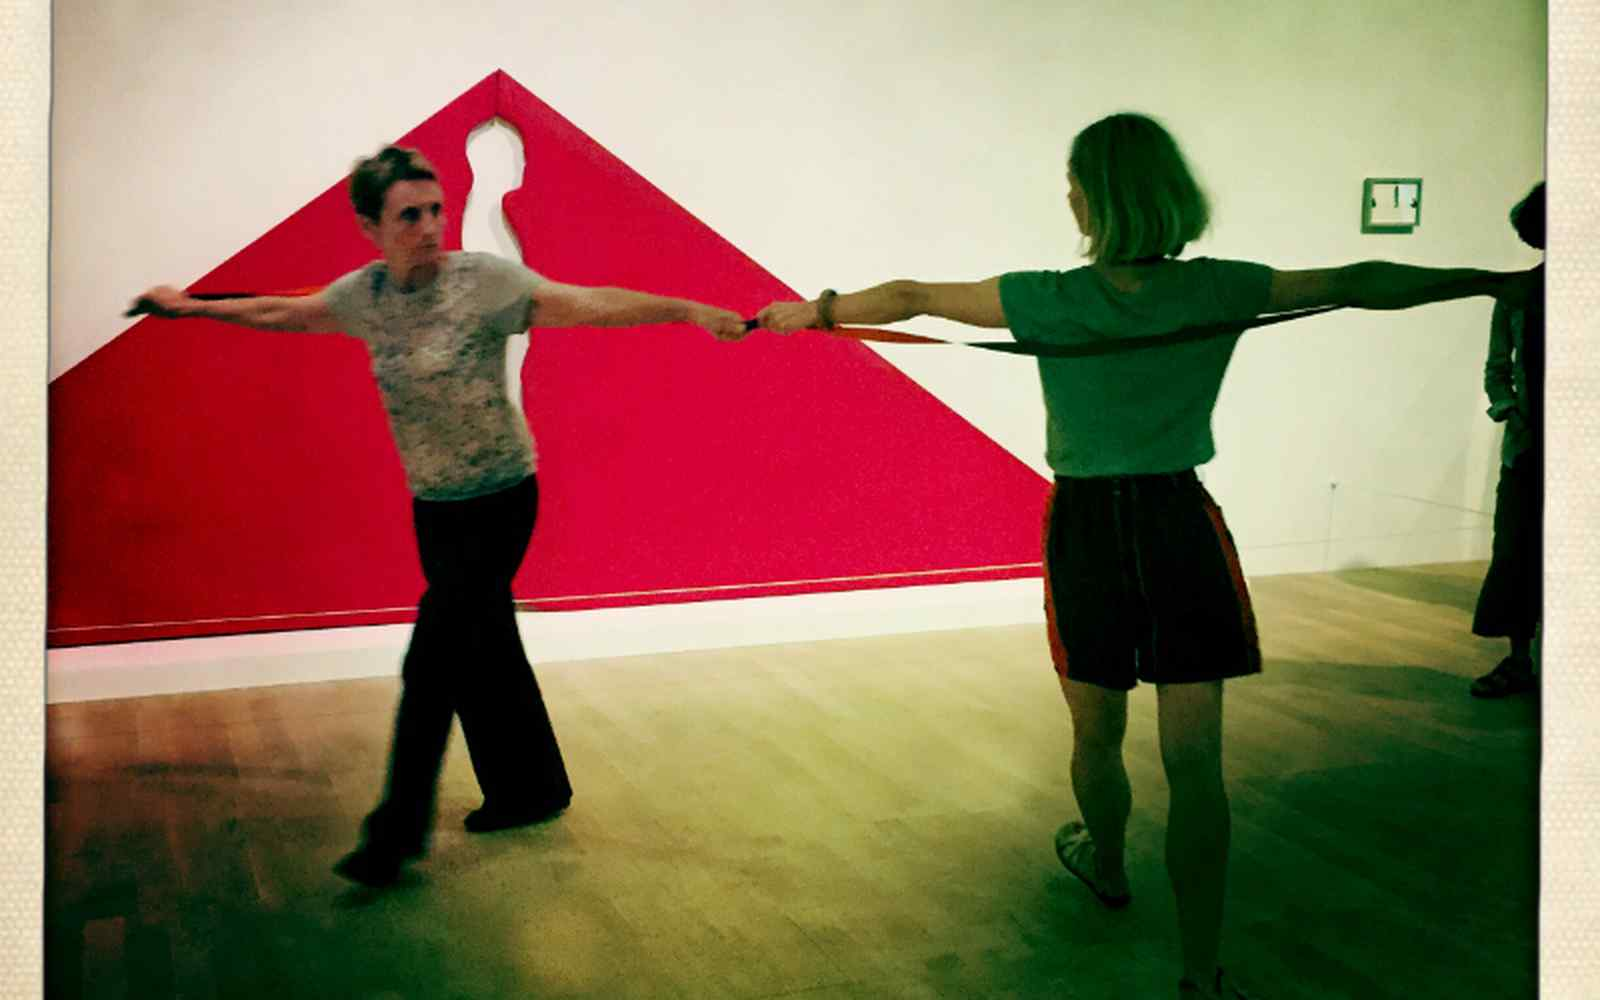 2 dancers in front of artwork at Tate Modern